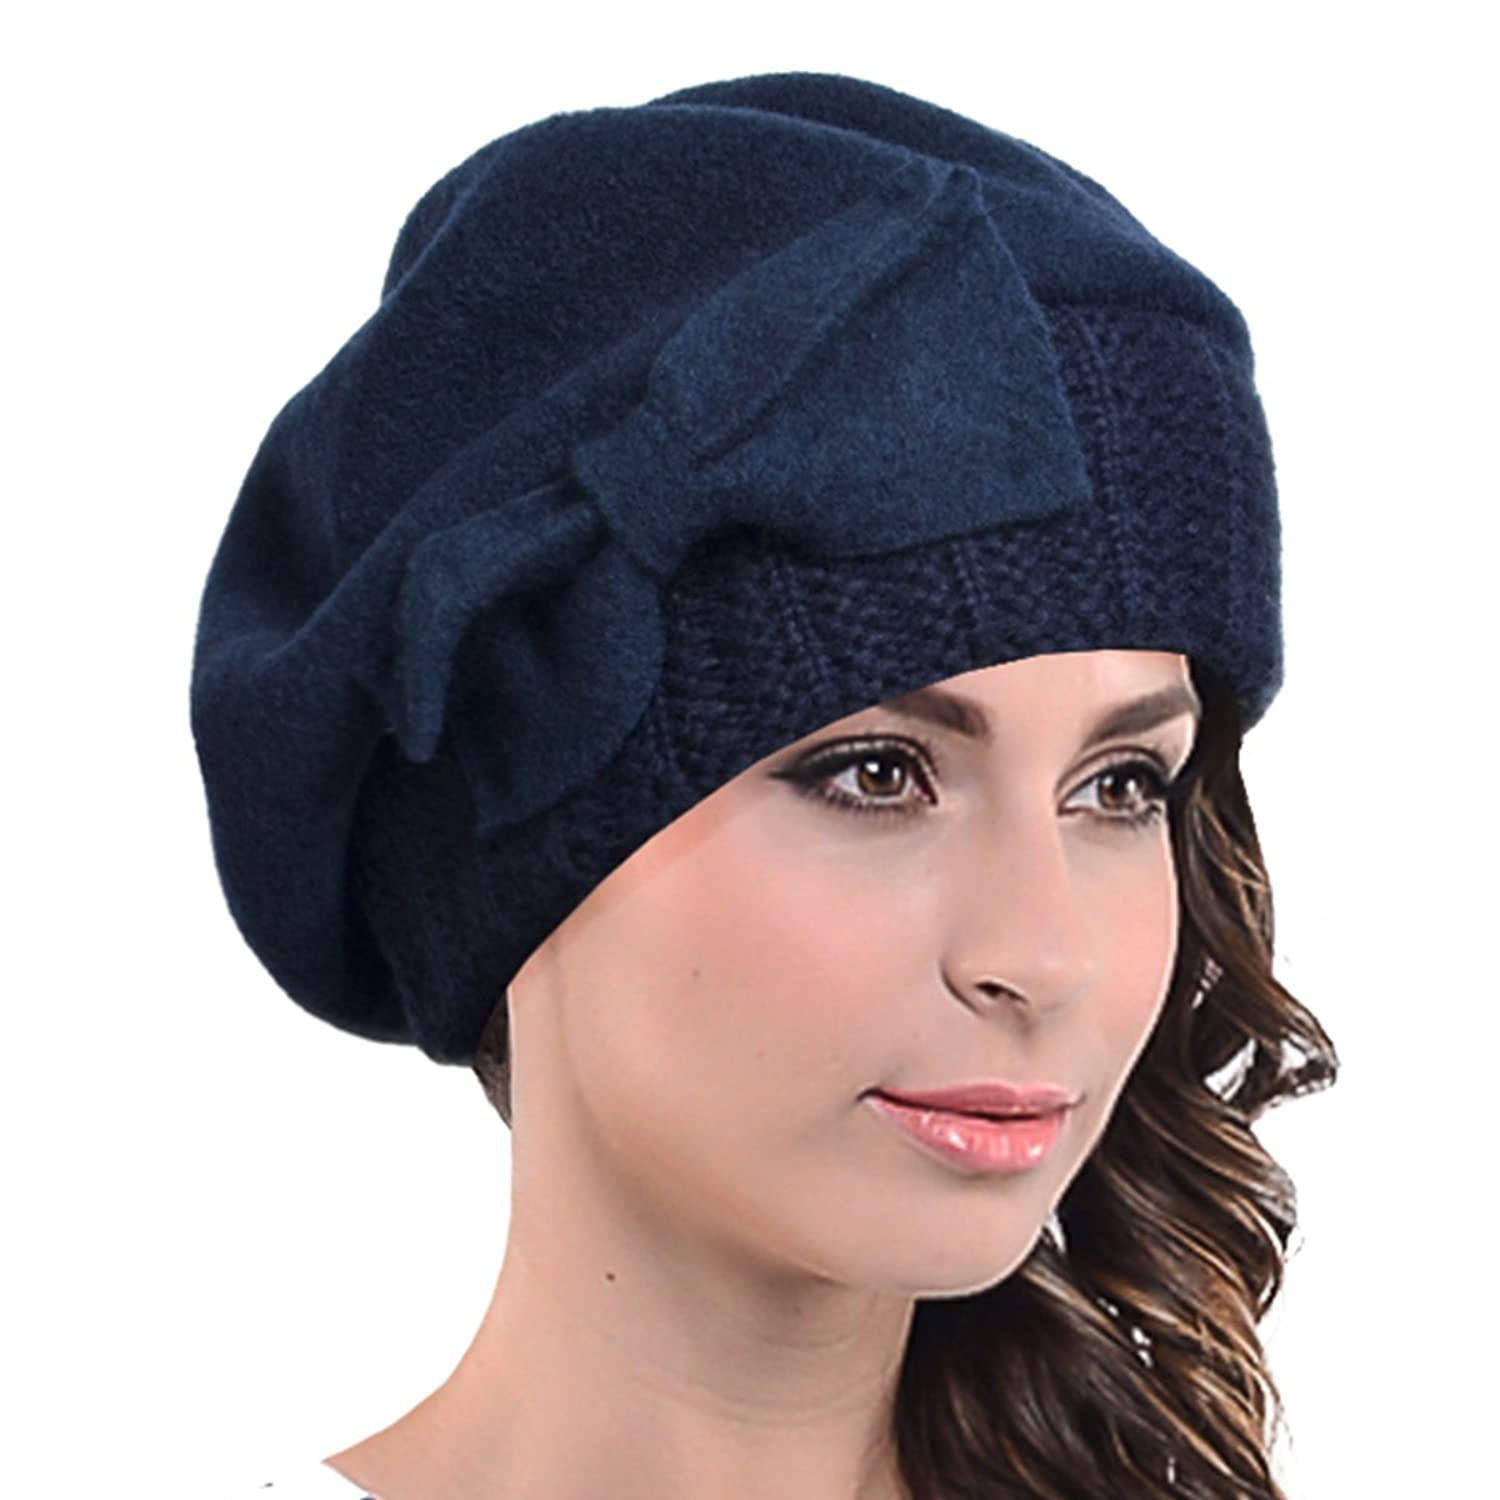 1940s Hair Snoods- Buy, Knit, Crochet or Sew a Snood Lady French Beret Wool Beret Chic Beanie Winter Hat Jf-br034 $21.99 AT vintagedancer.com